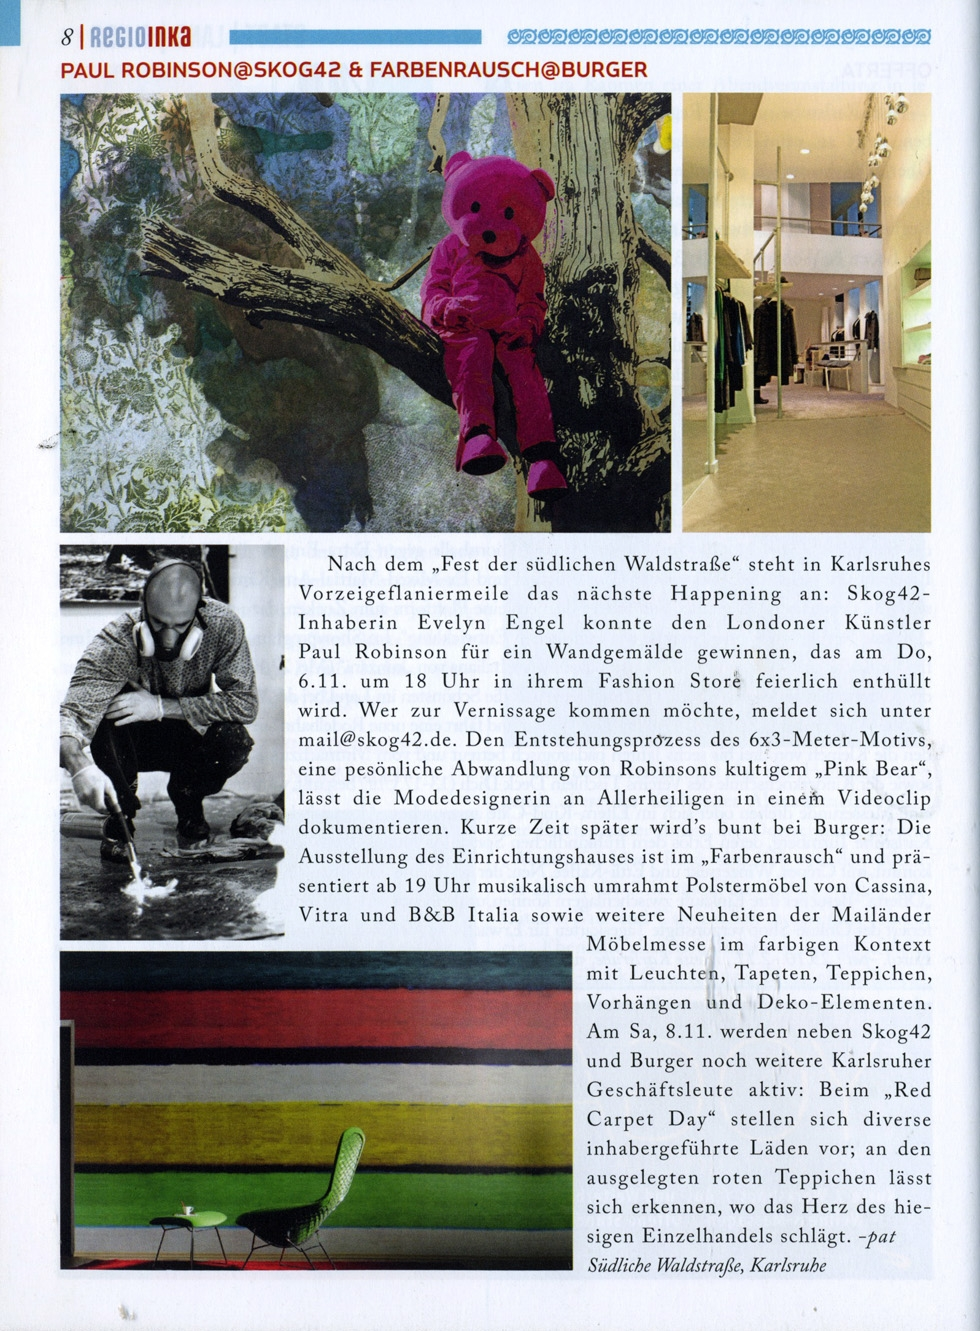 Paul Robinson featured in Regio Inka